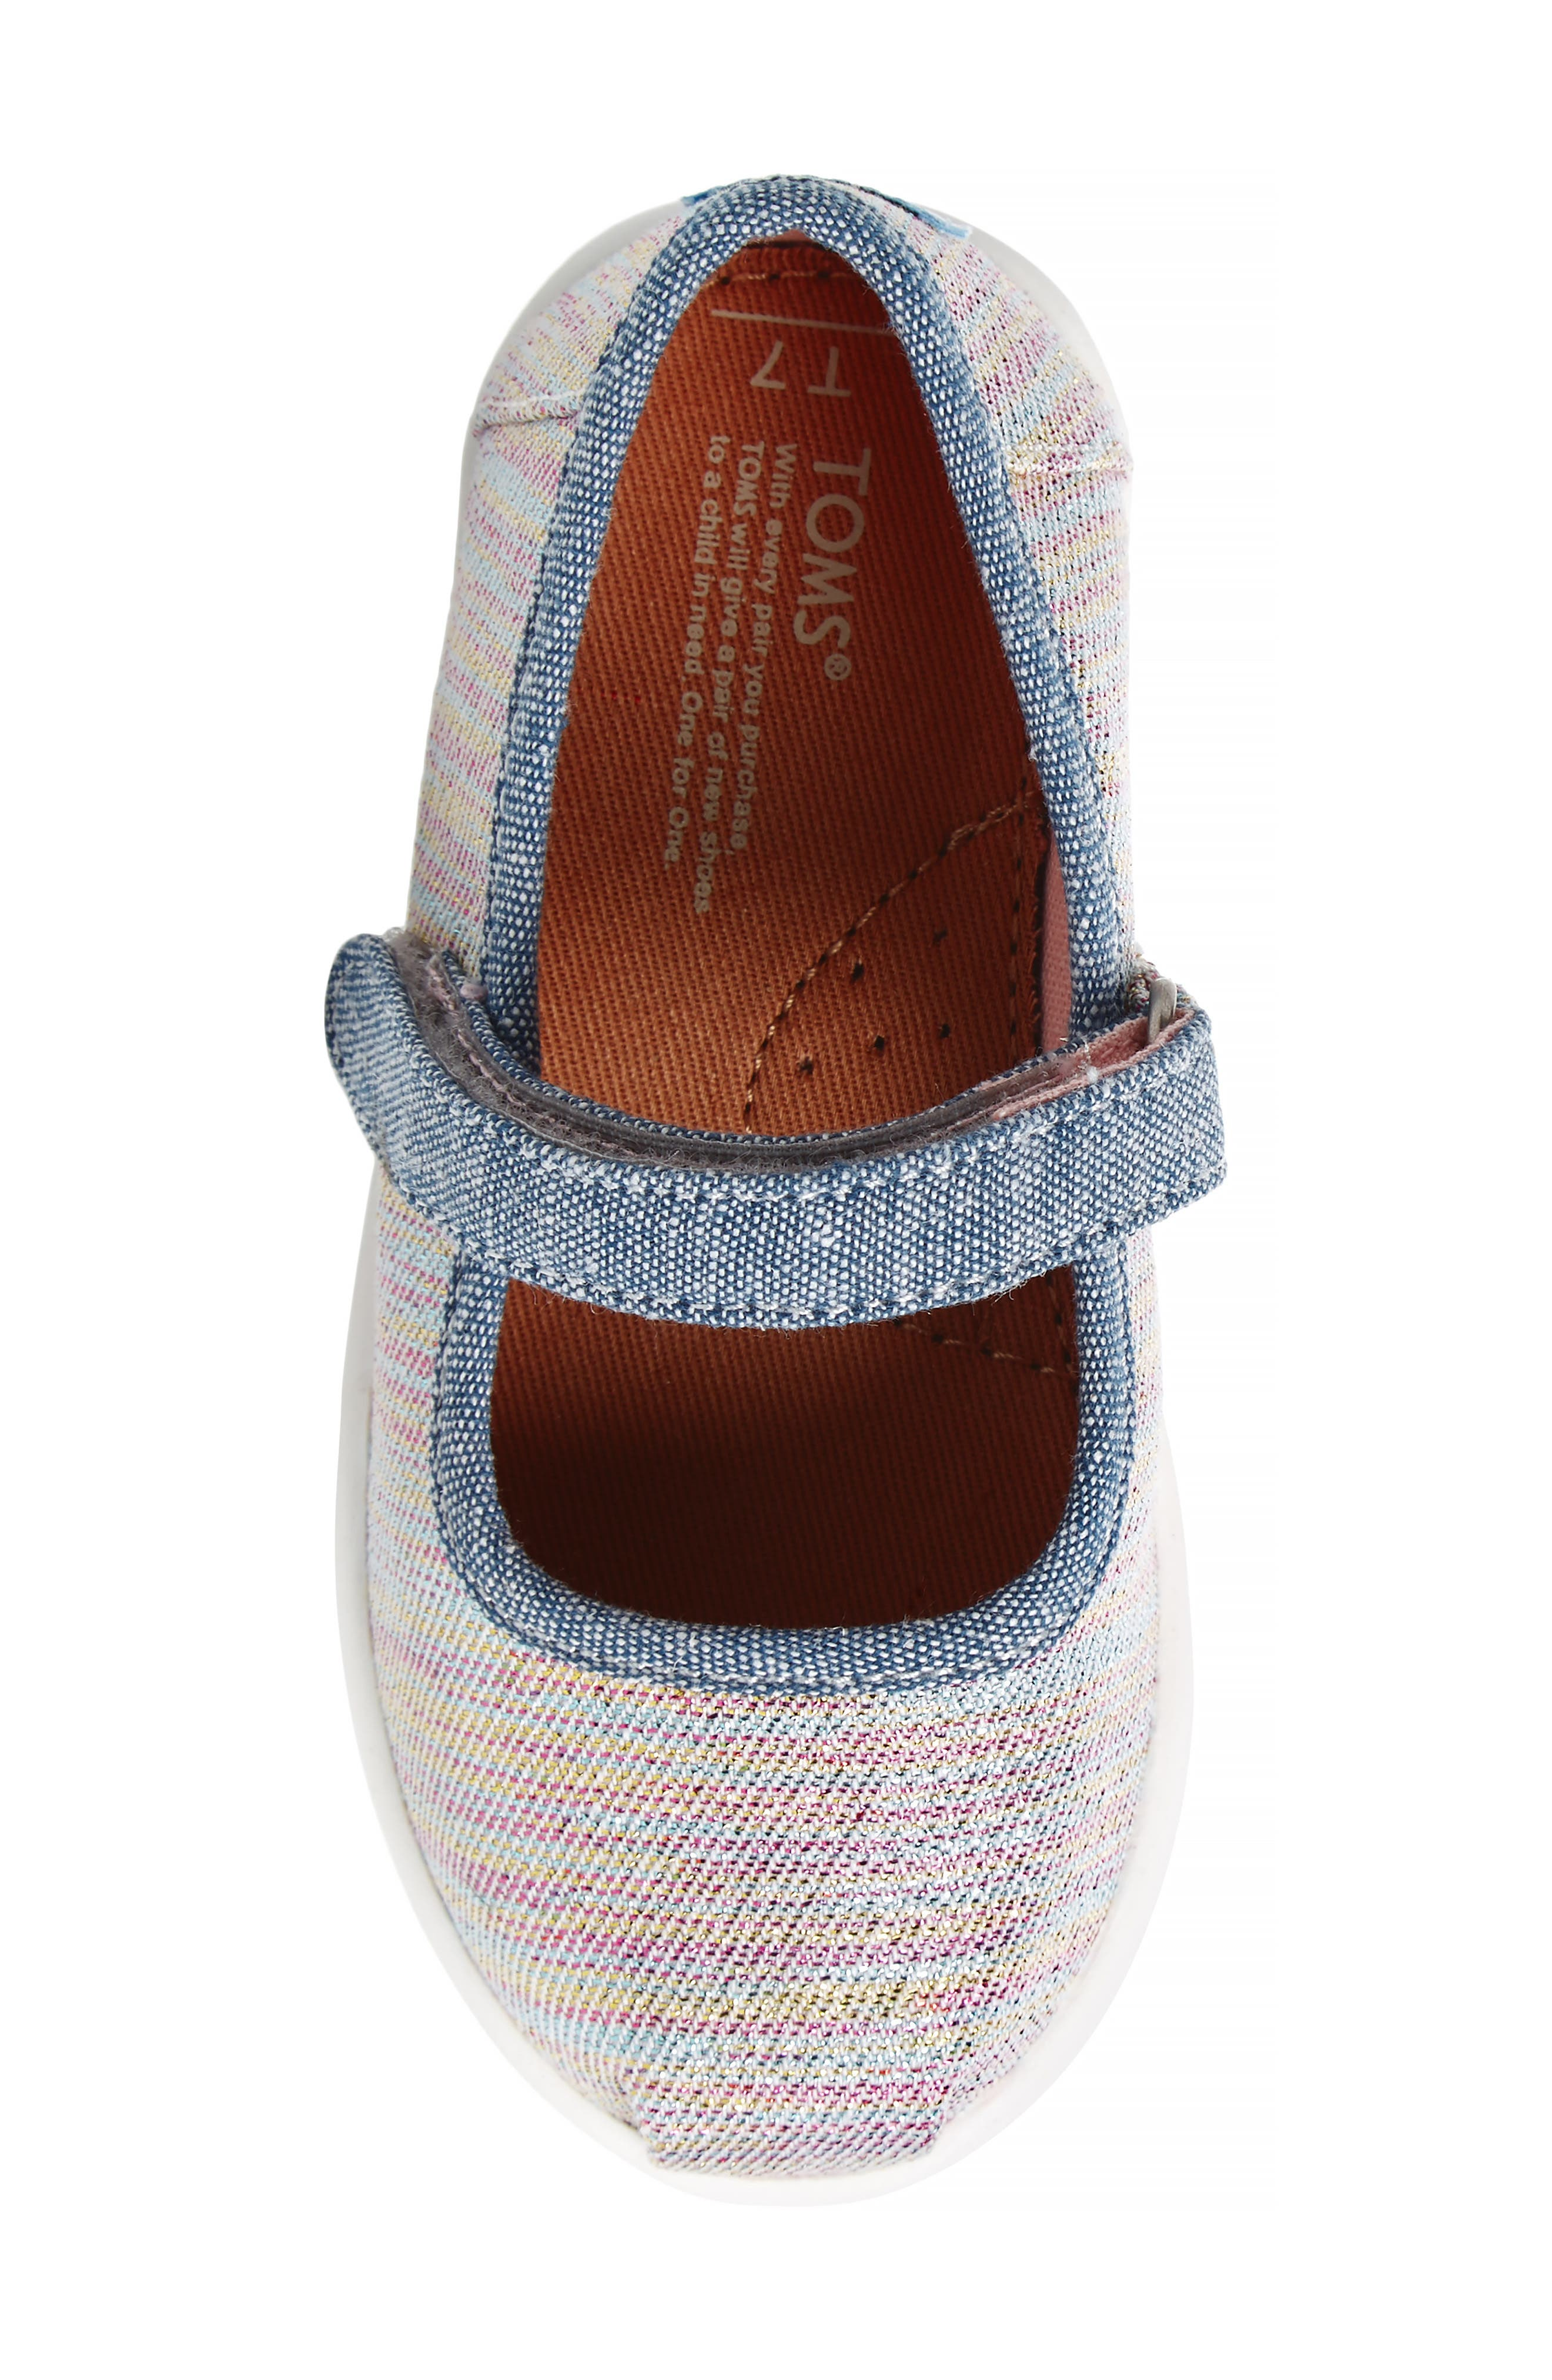 Mary Jane Sneaker,                             Alternate thumbnail 5, color,                             PINK MULTI TWILL GLIMMER